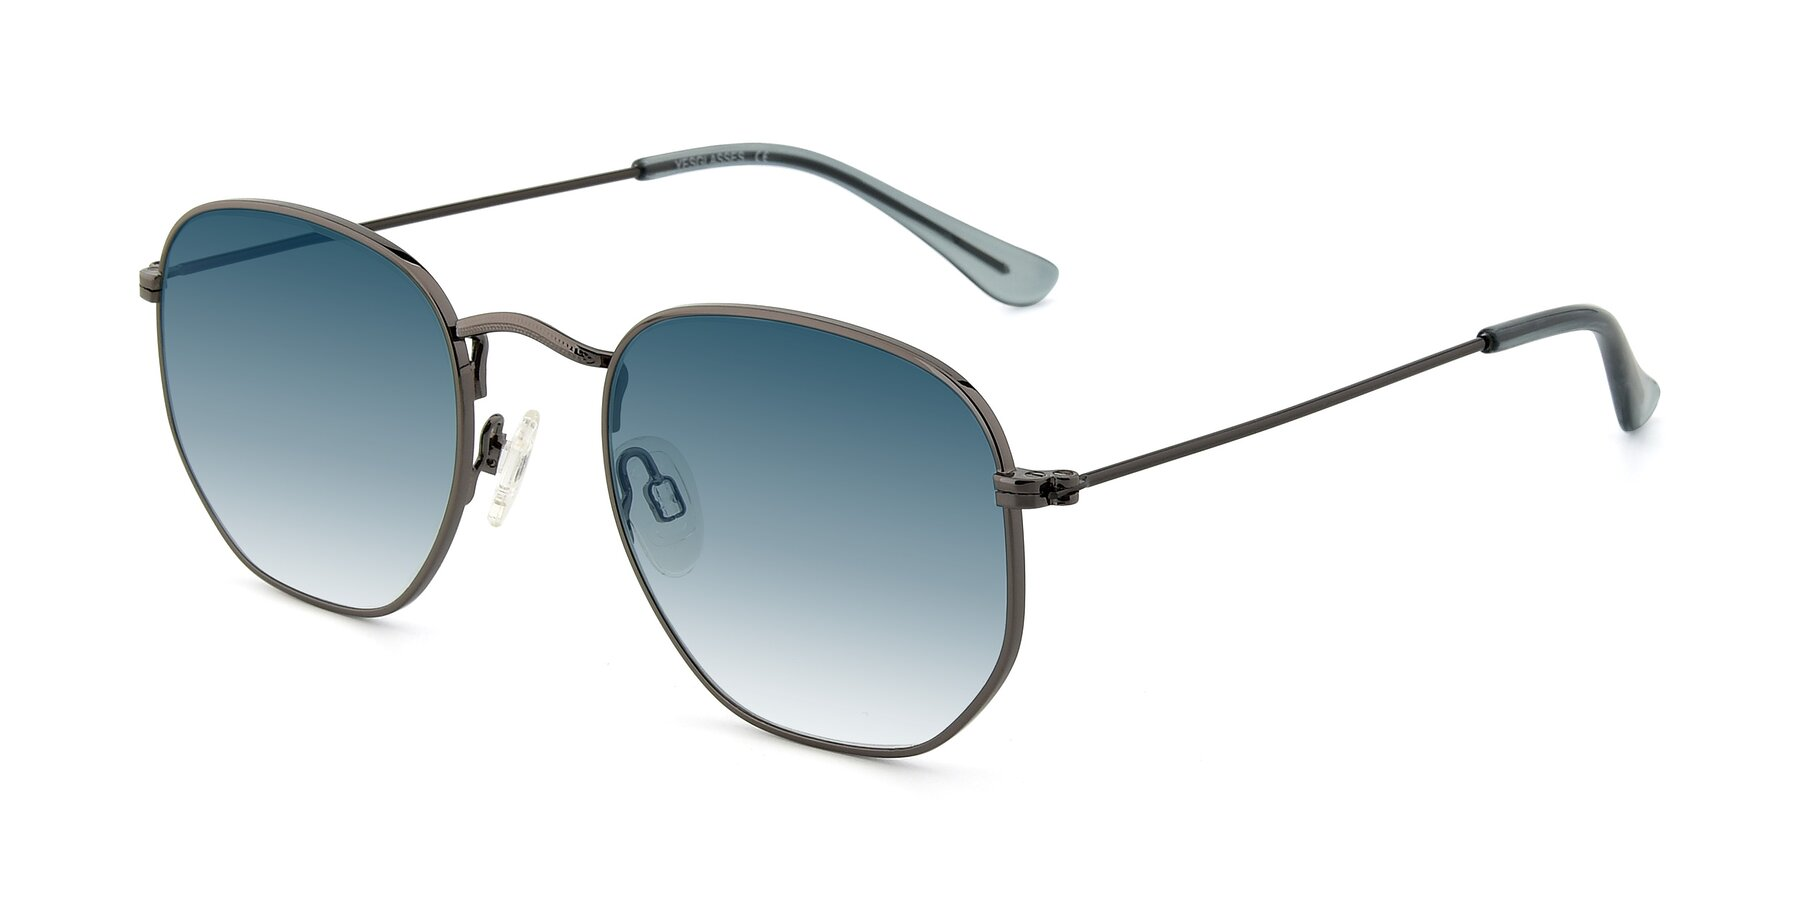 Angle of SSR1944 in Grey with Blue Gradient Lenses